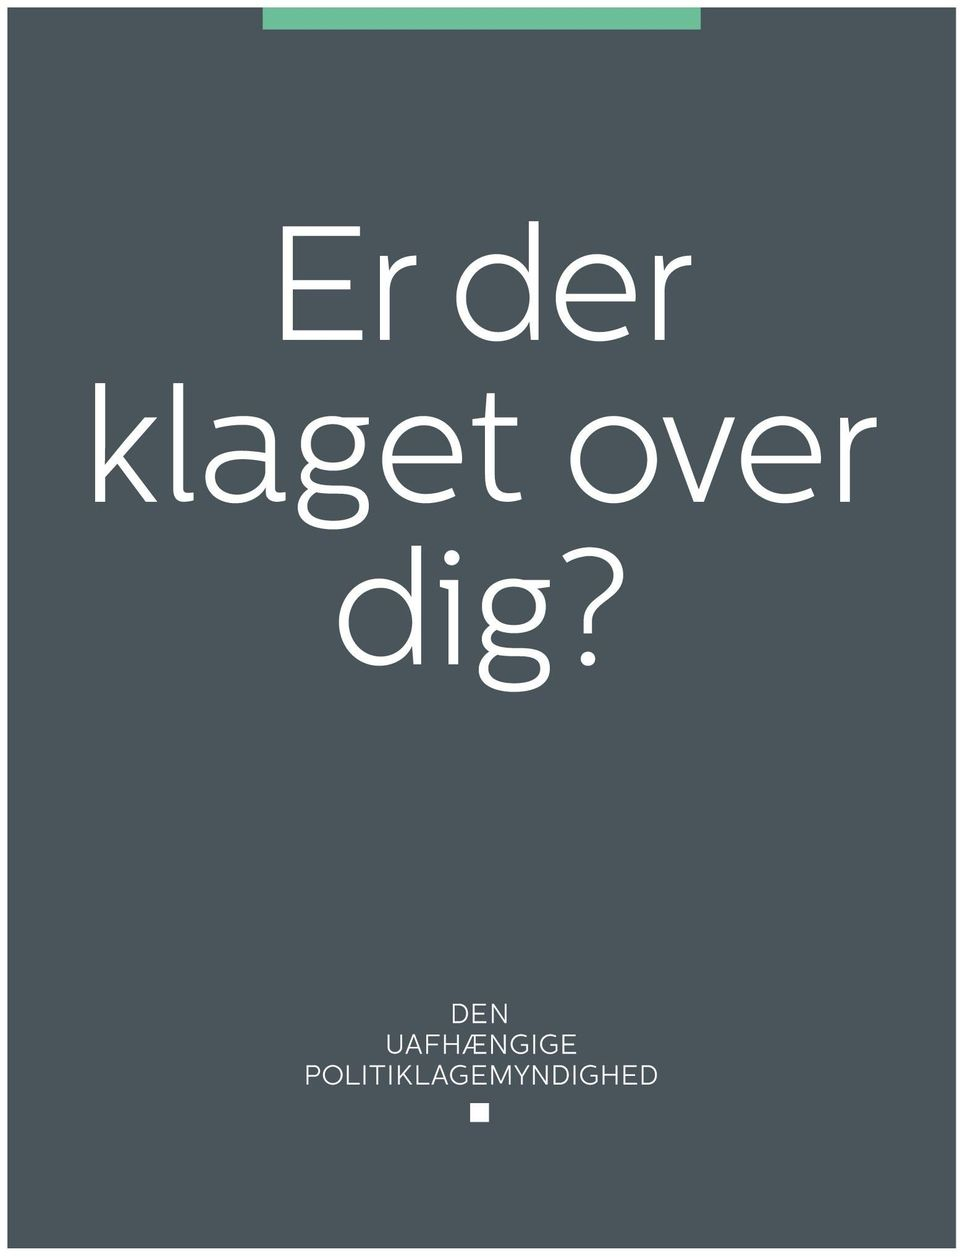 over dig?